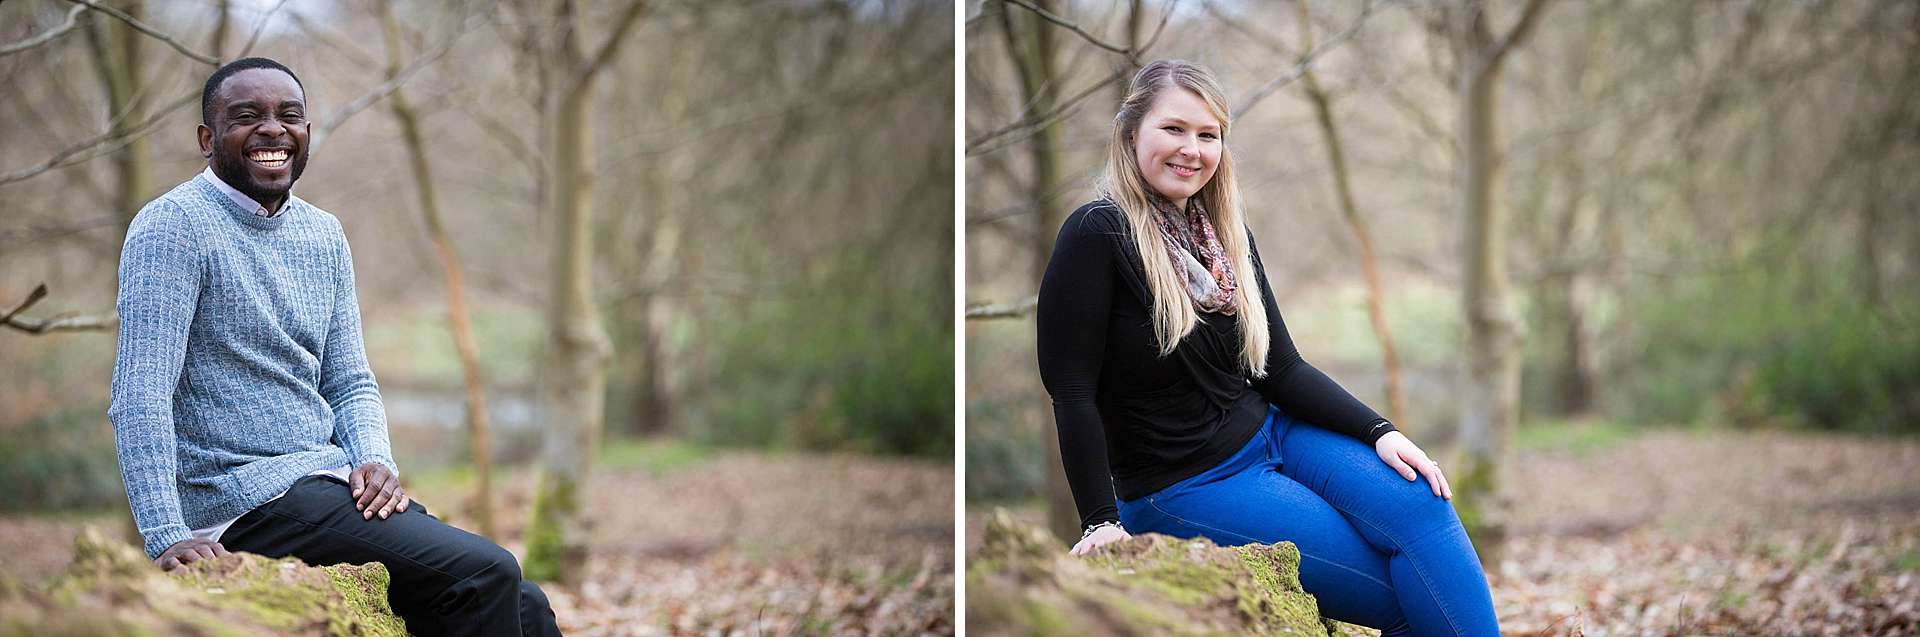 Berkshire portrait photographer